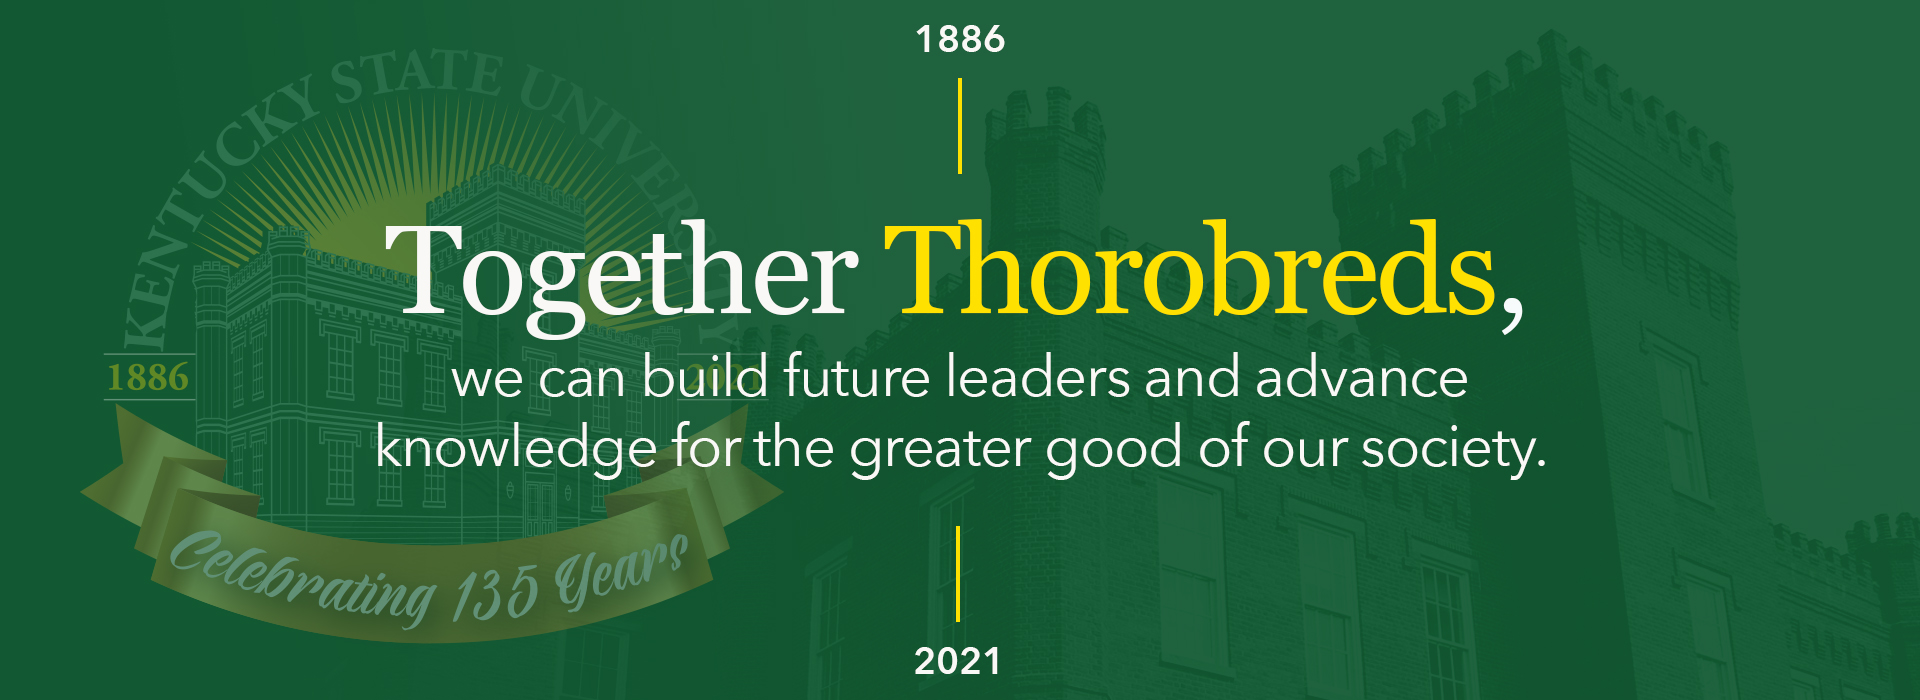 Together Thorobreds graphic